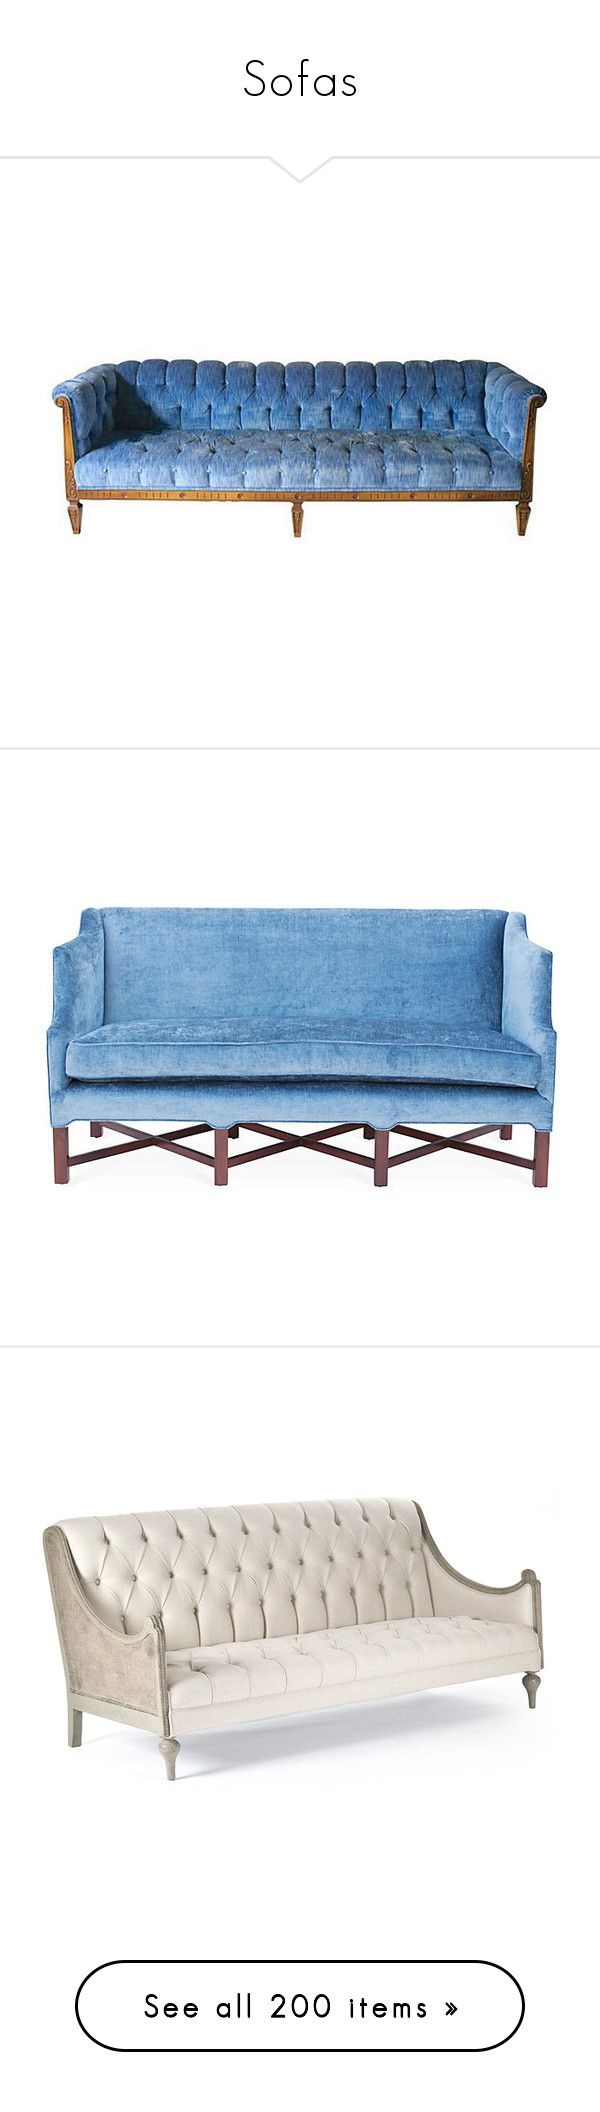 """""""Sofas"""" by annie-qiu ❤ liked on Polyvore featuring home, furniture, sofas, couch, chesterfield couch, blue loveseat, second hand sofas, second hand furniture, blue chesterfield sofa and barclay butera"""